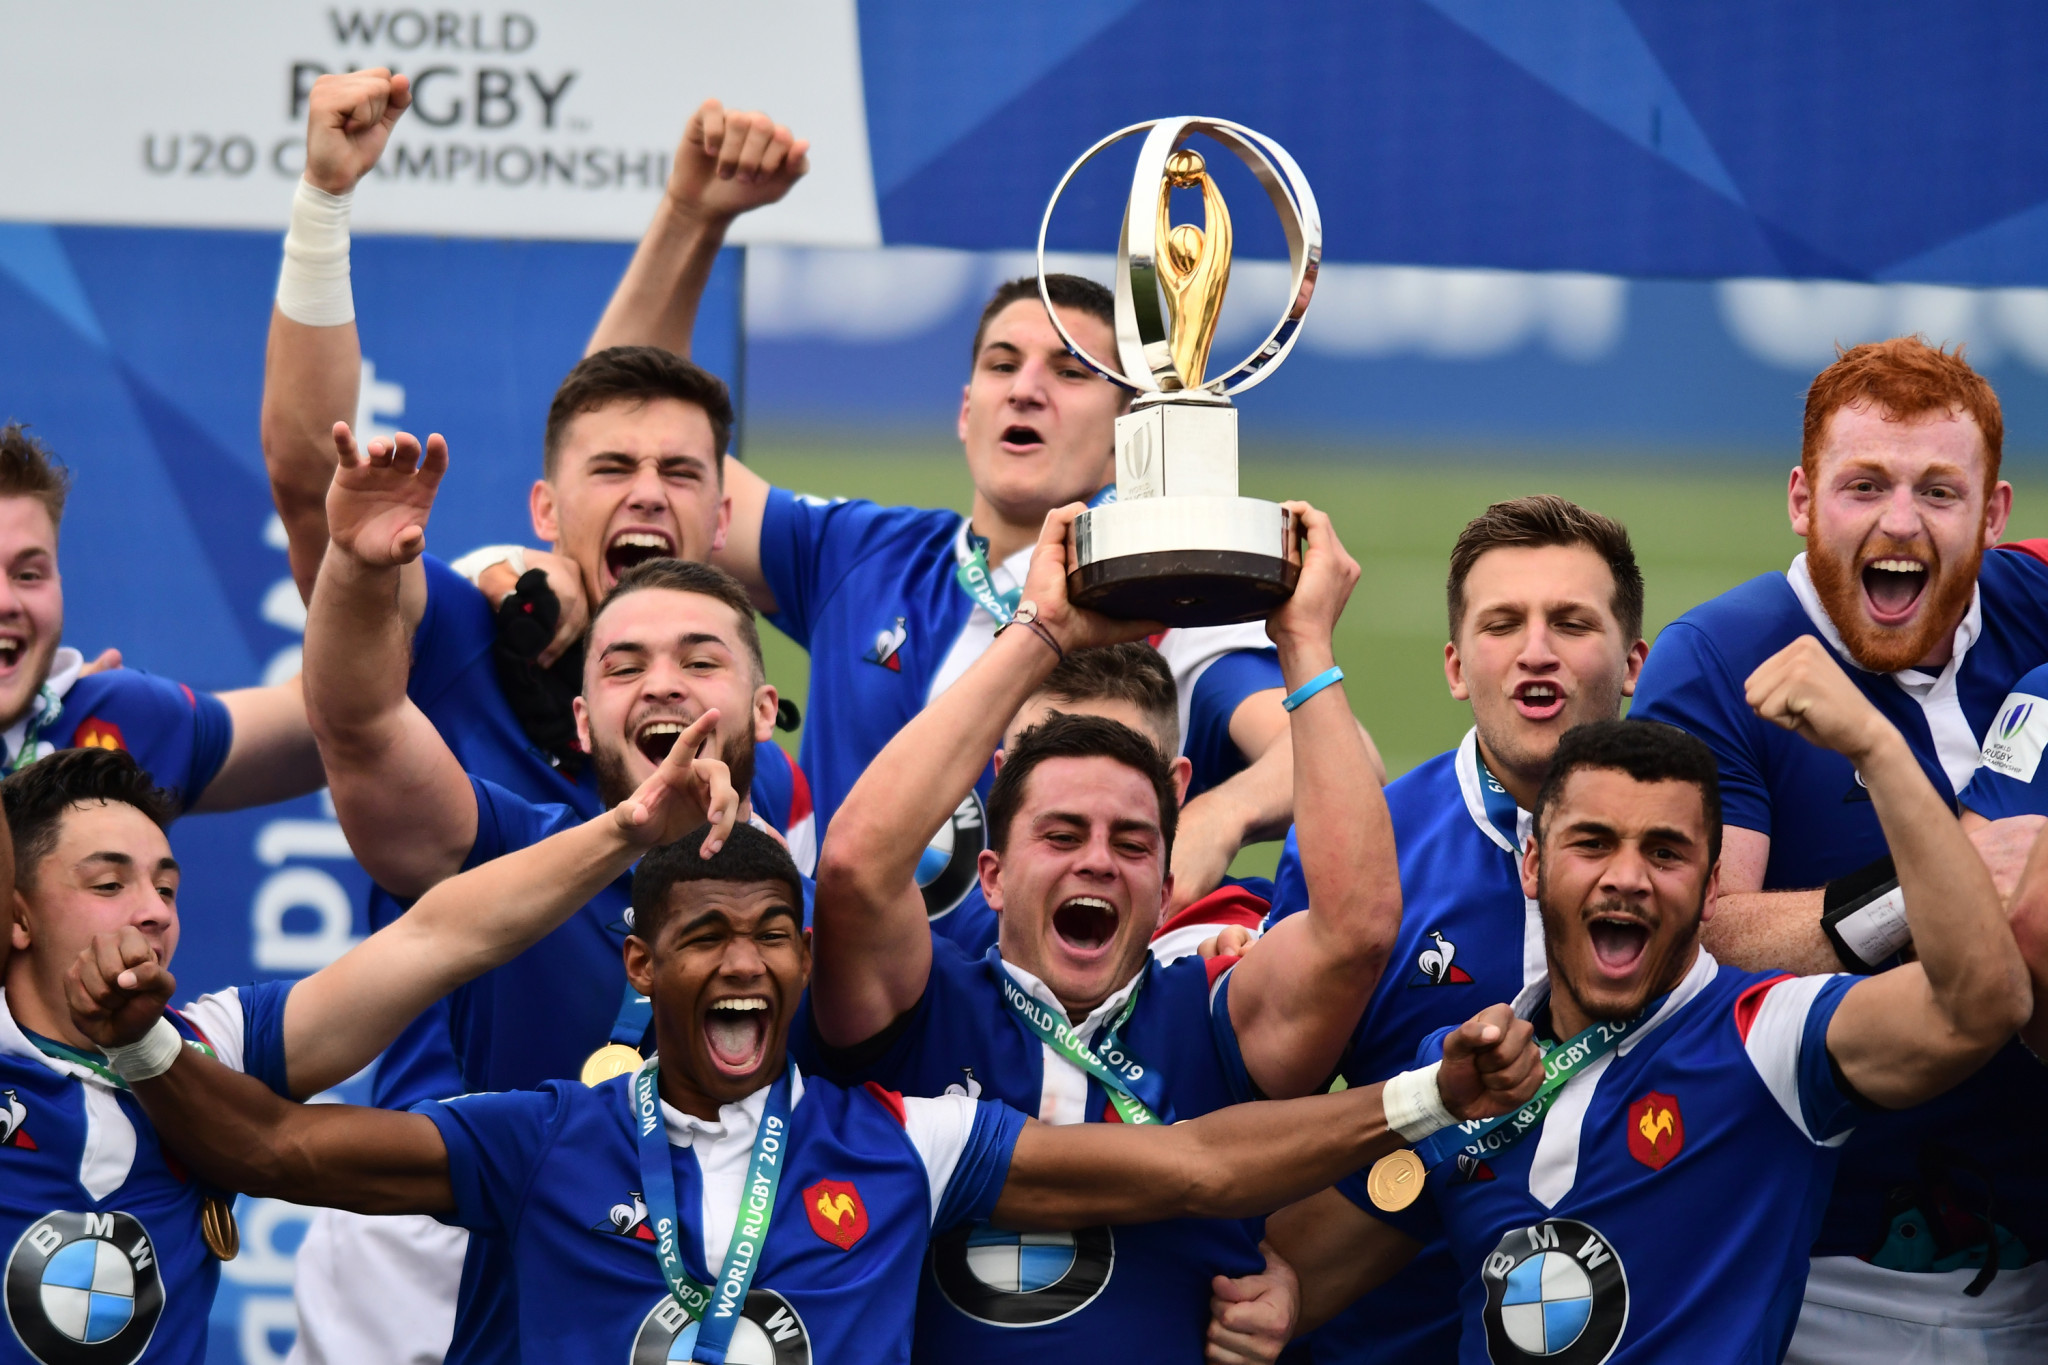 World Rugby cancels Under-20 World Championship